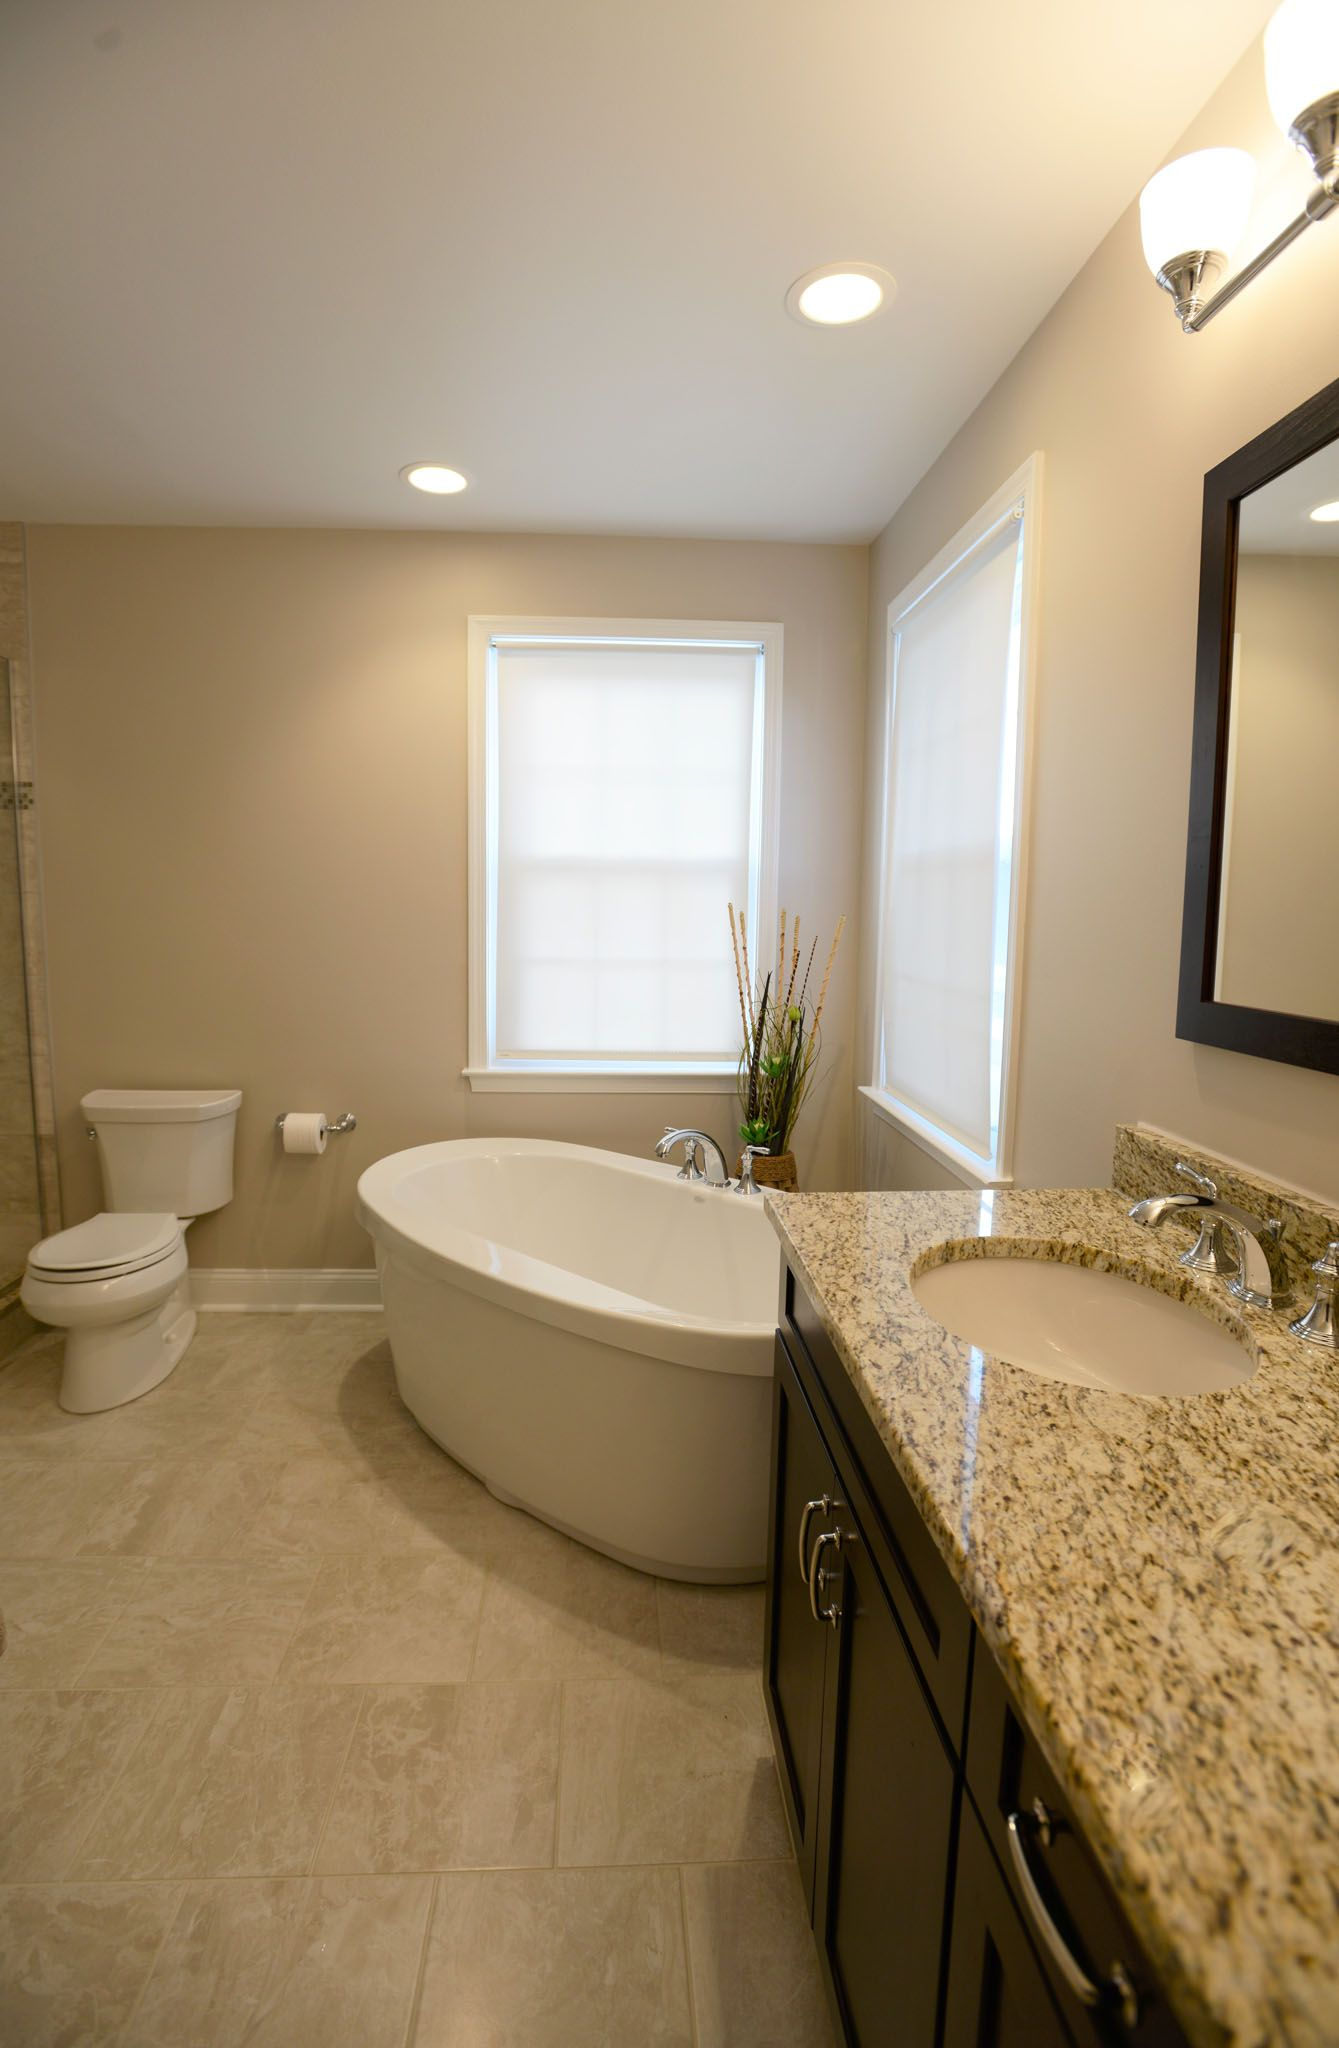 This Beige Flooring Rich Espresso Cabinets And A Beautiful Layout Create Ample Space The Warm Colors Bathroom Design L Shaped Bathroom Full Bathroom Remodel